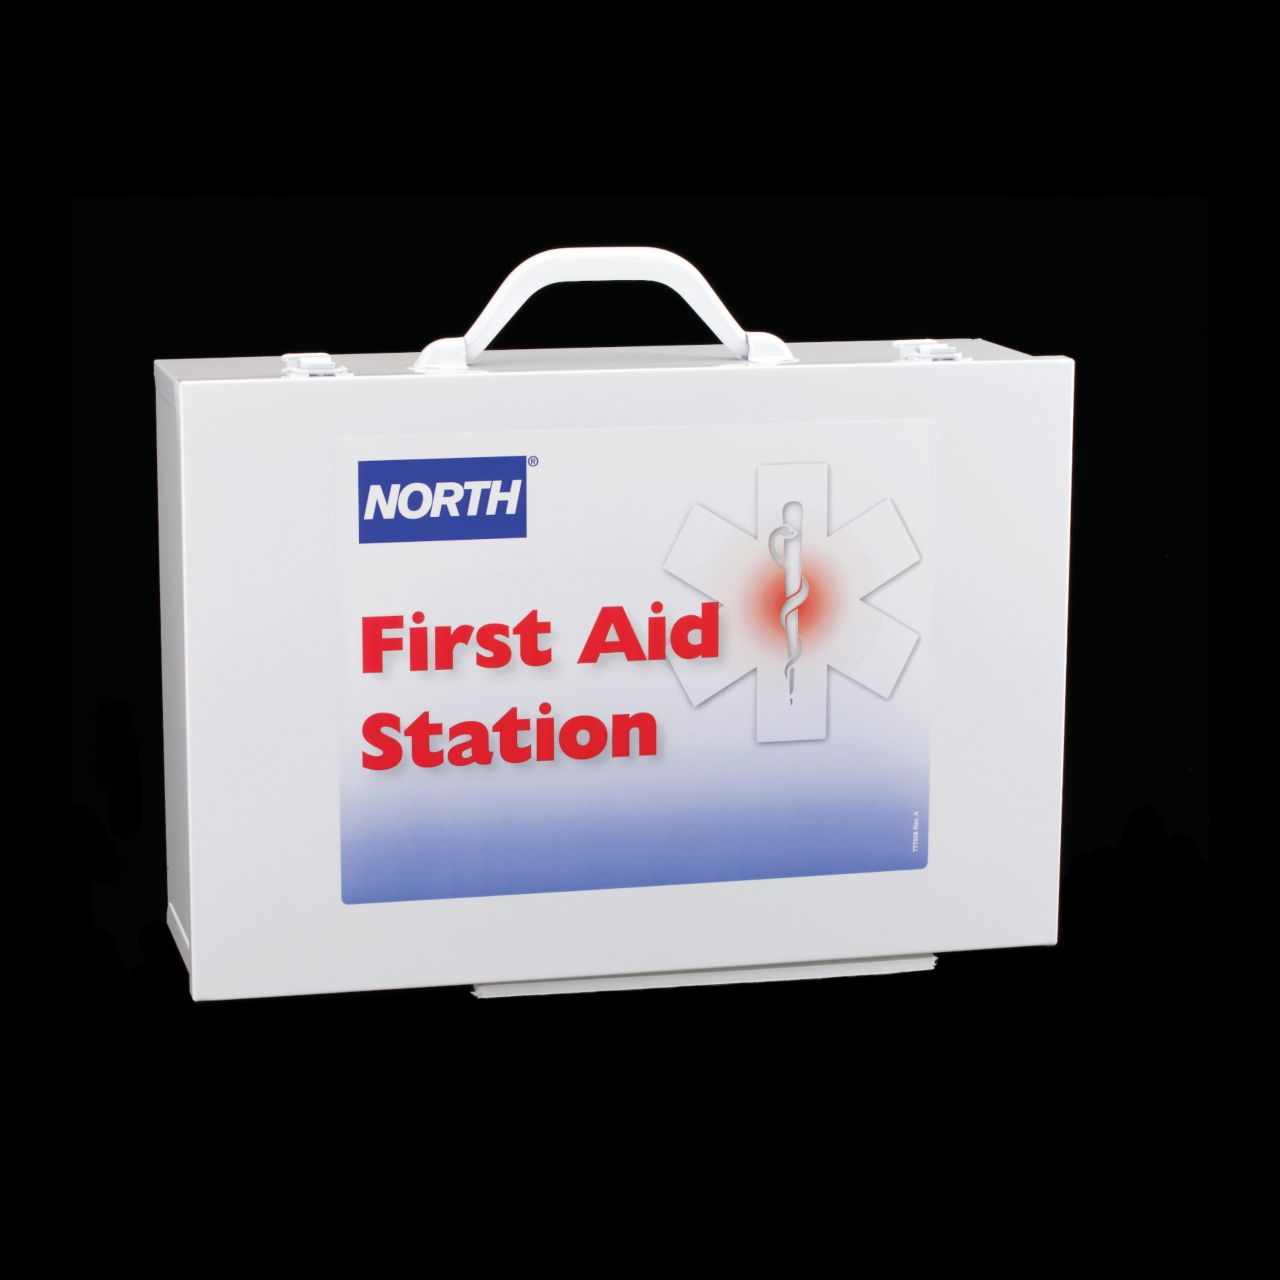 HS_019720-0009l_-_first_aid_station,_100_person,_metal_north_019720